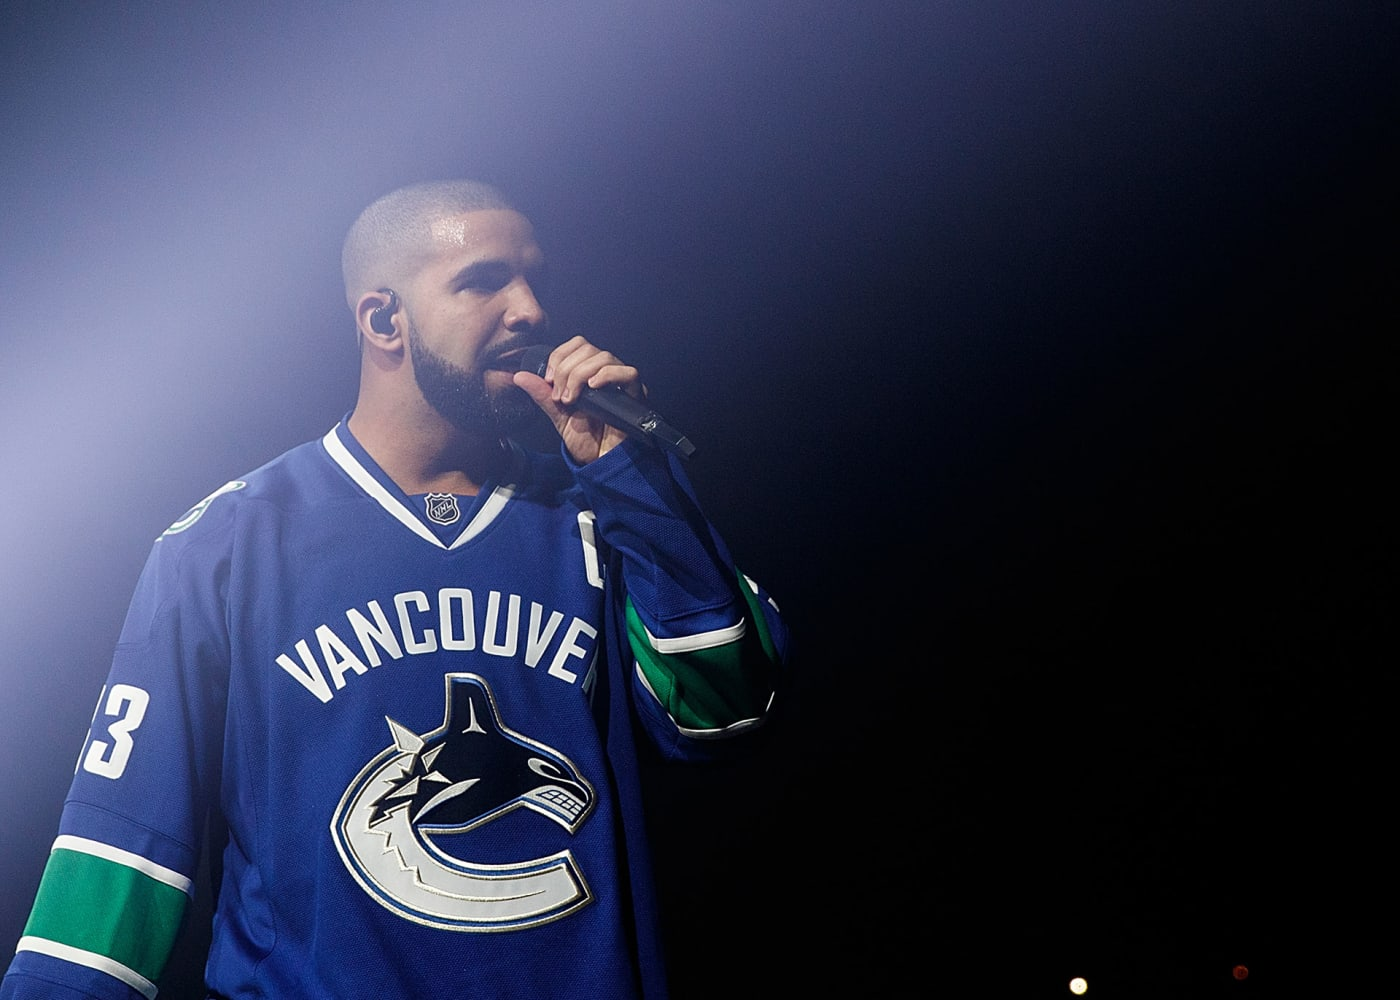 Drake performing in Vancouver wearing Canucks jersey